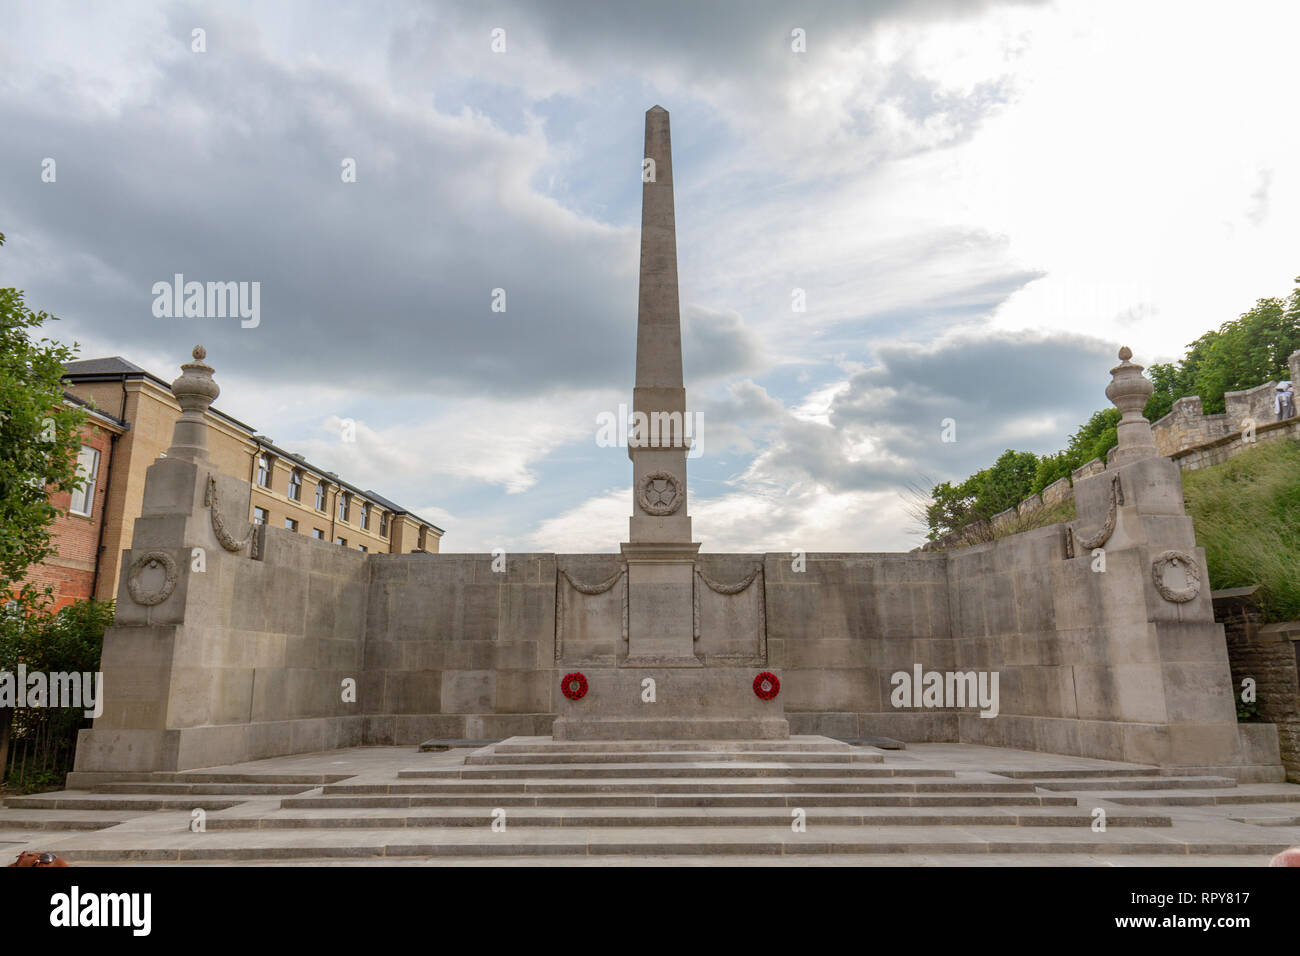 First World War Memorial to the 2236 members of the North Eastern Railway who died, City of York, Yorkshire, UK. - Stock Image